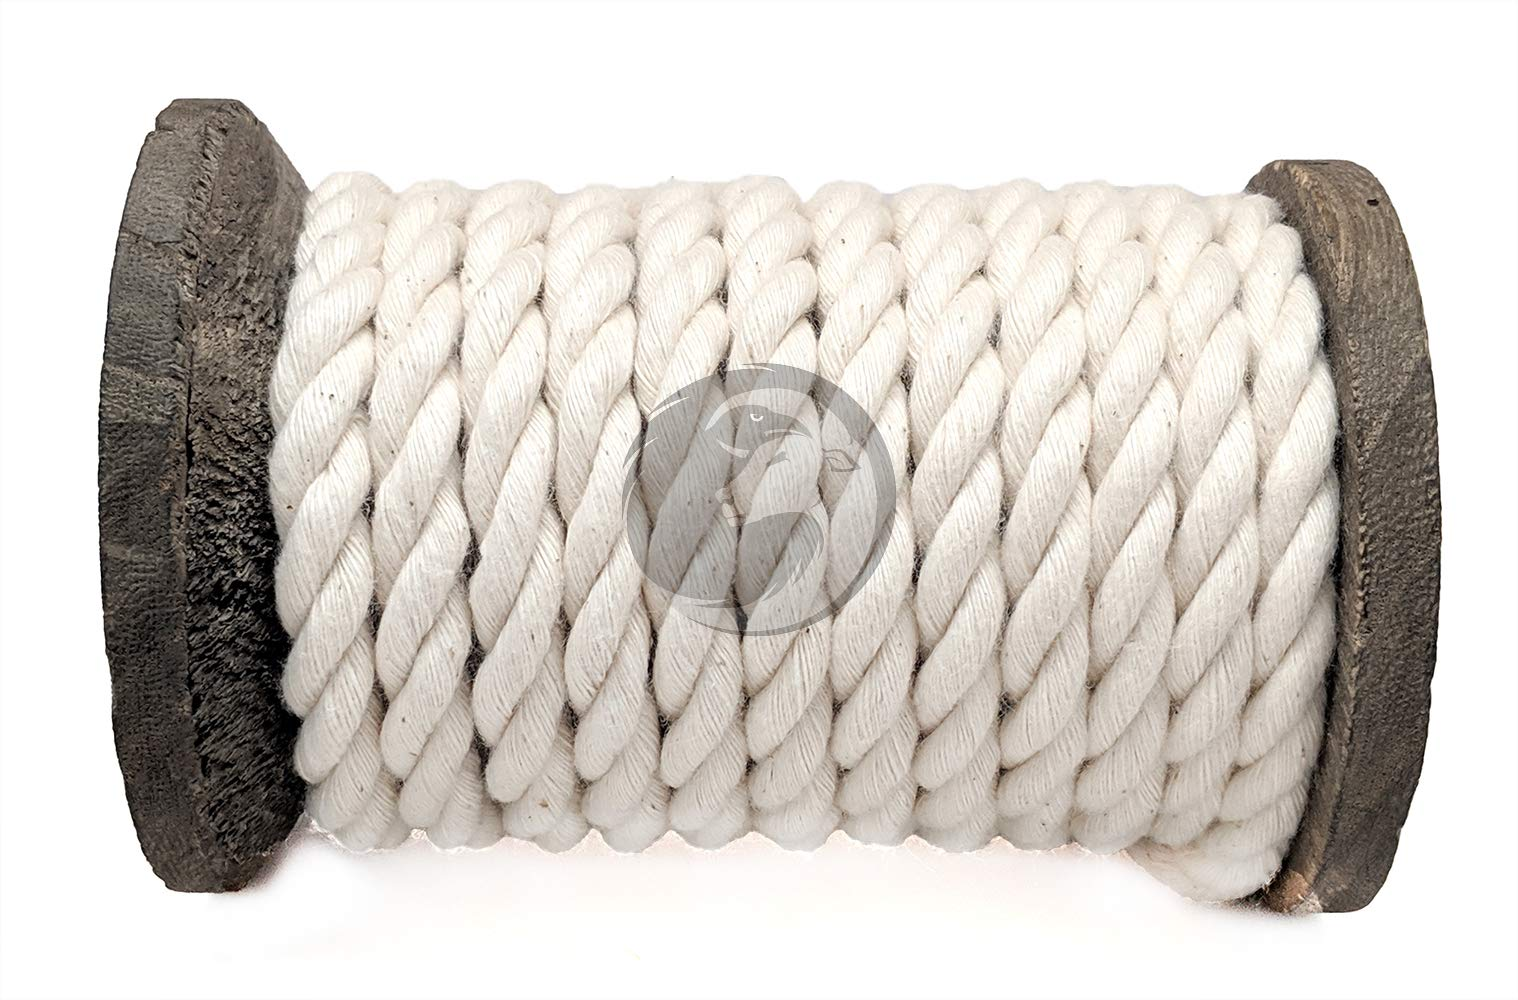 Ravenox 100% Cotton Twisted Rope | (White)(3/8 in x 1000 ft) |USA Made Natural Cord | Baker & Butchers Twine, Macramé, Knotting, Crafts, Pet Toys by Ravenox (Image #4)